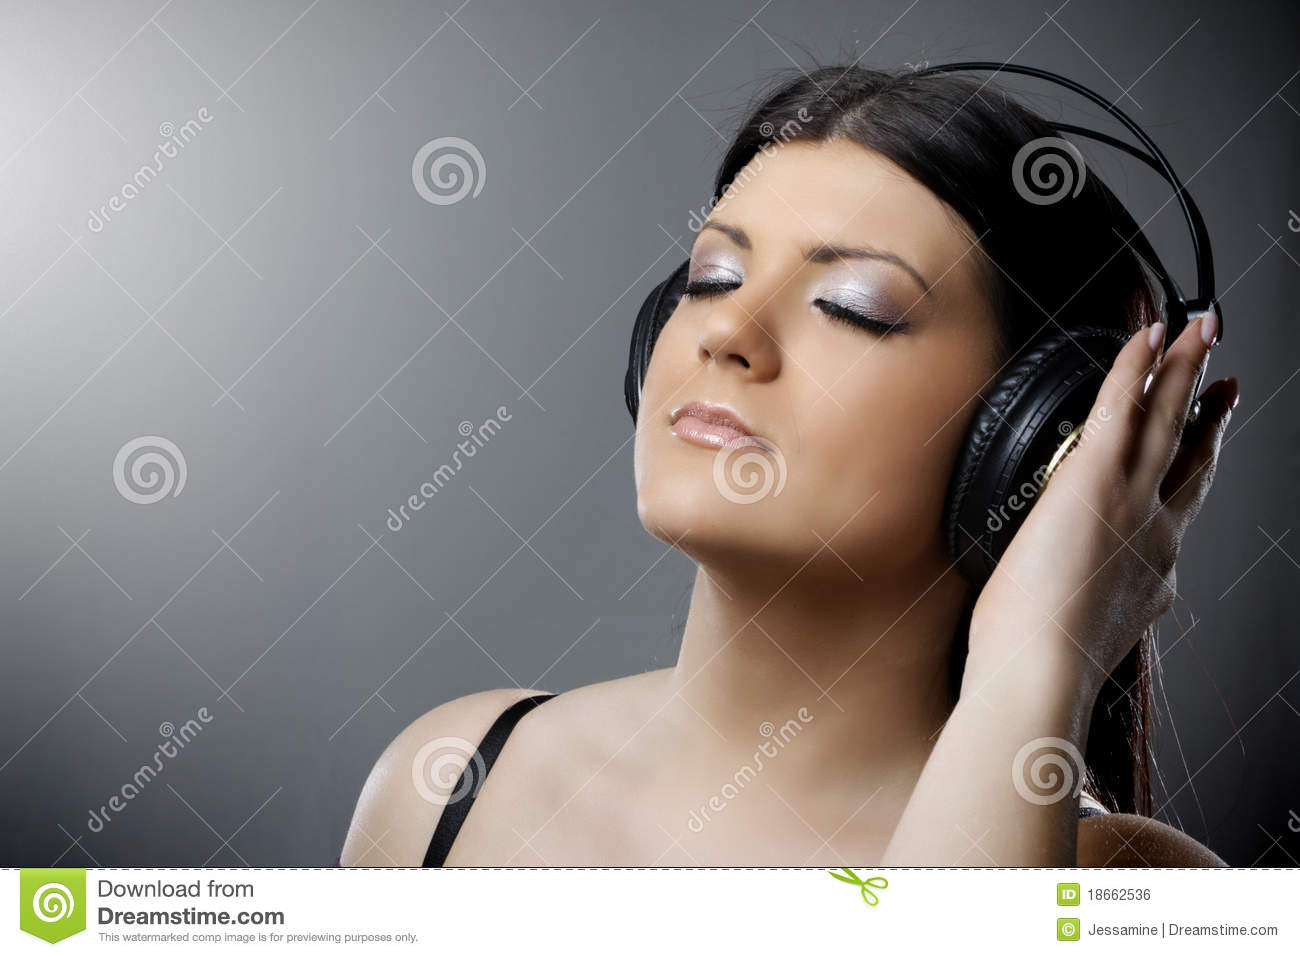 Beautiful Headphones Beautiful Young Woman With Headphones Royalty Free Stock